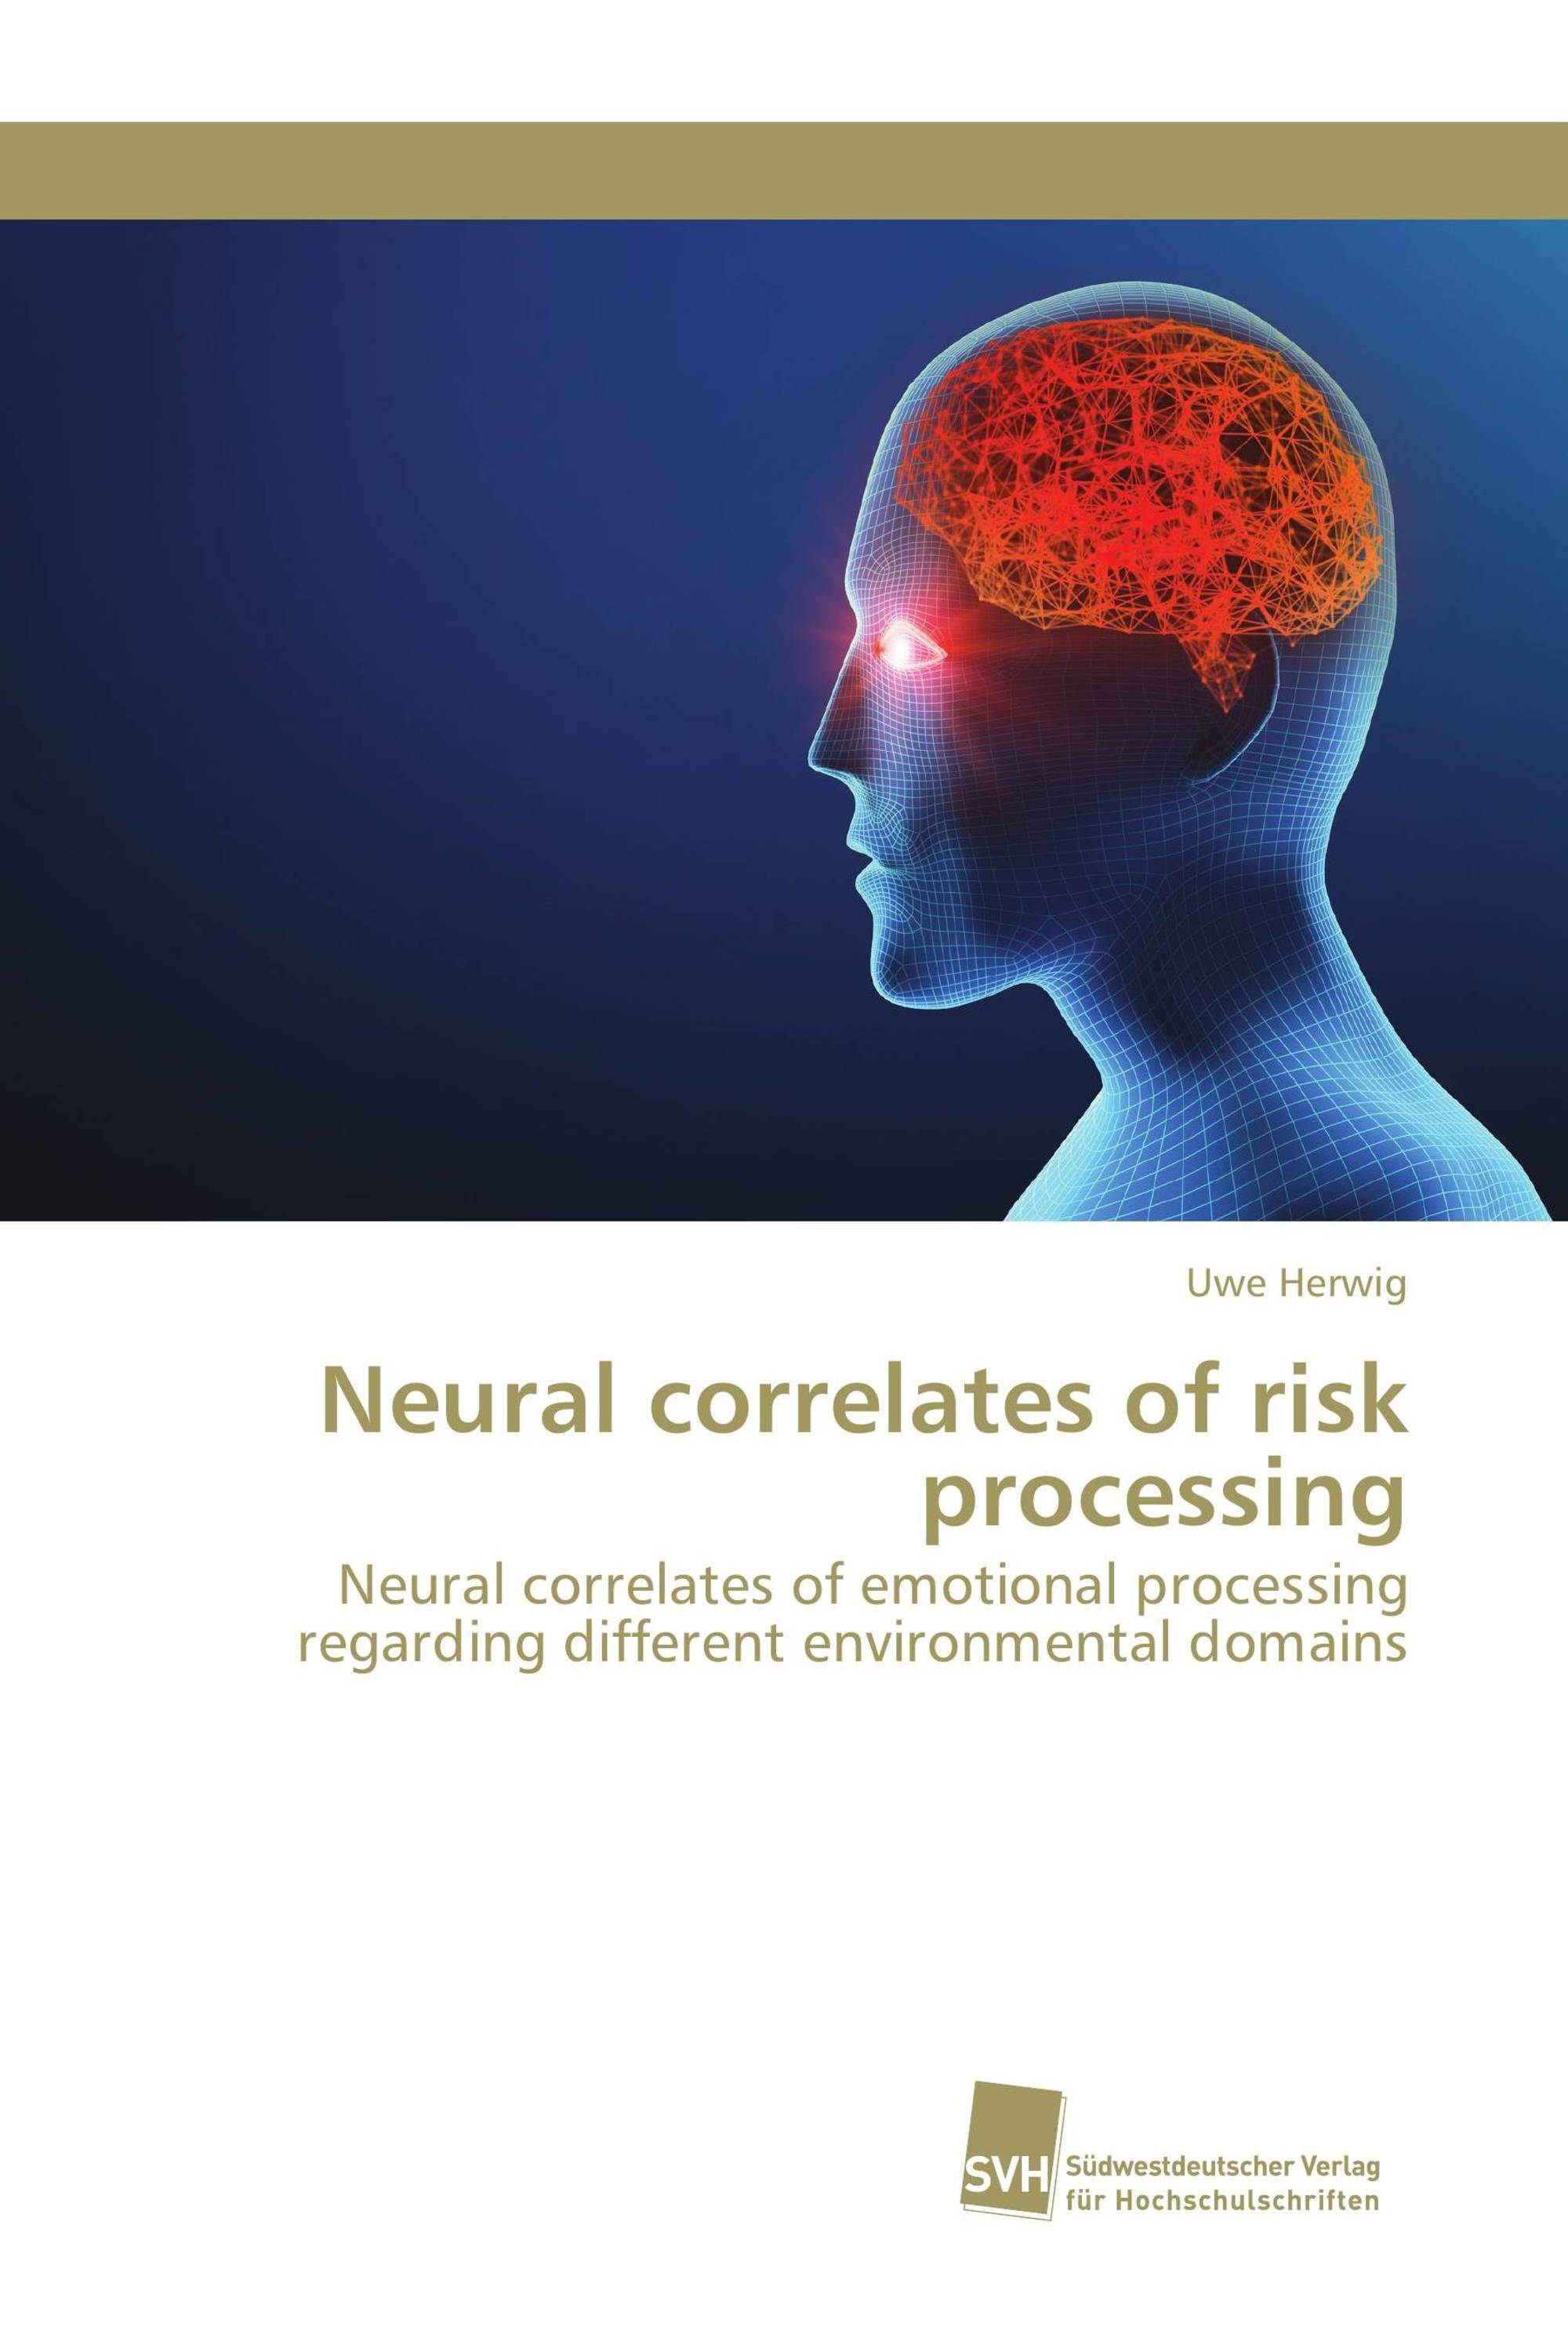 Neural correlates of risk processing